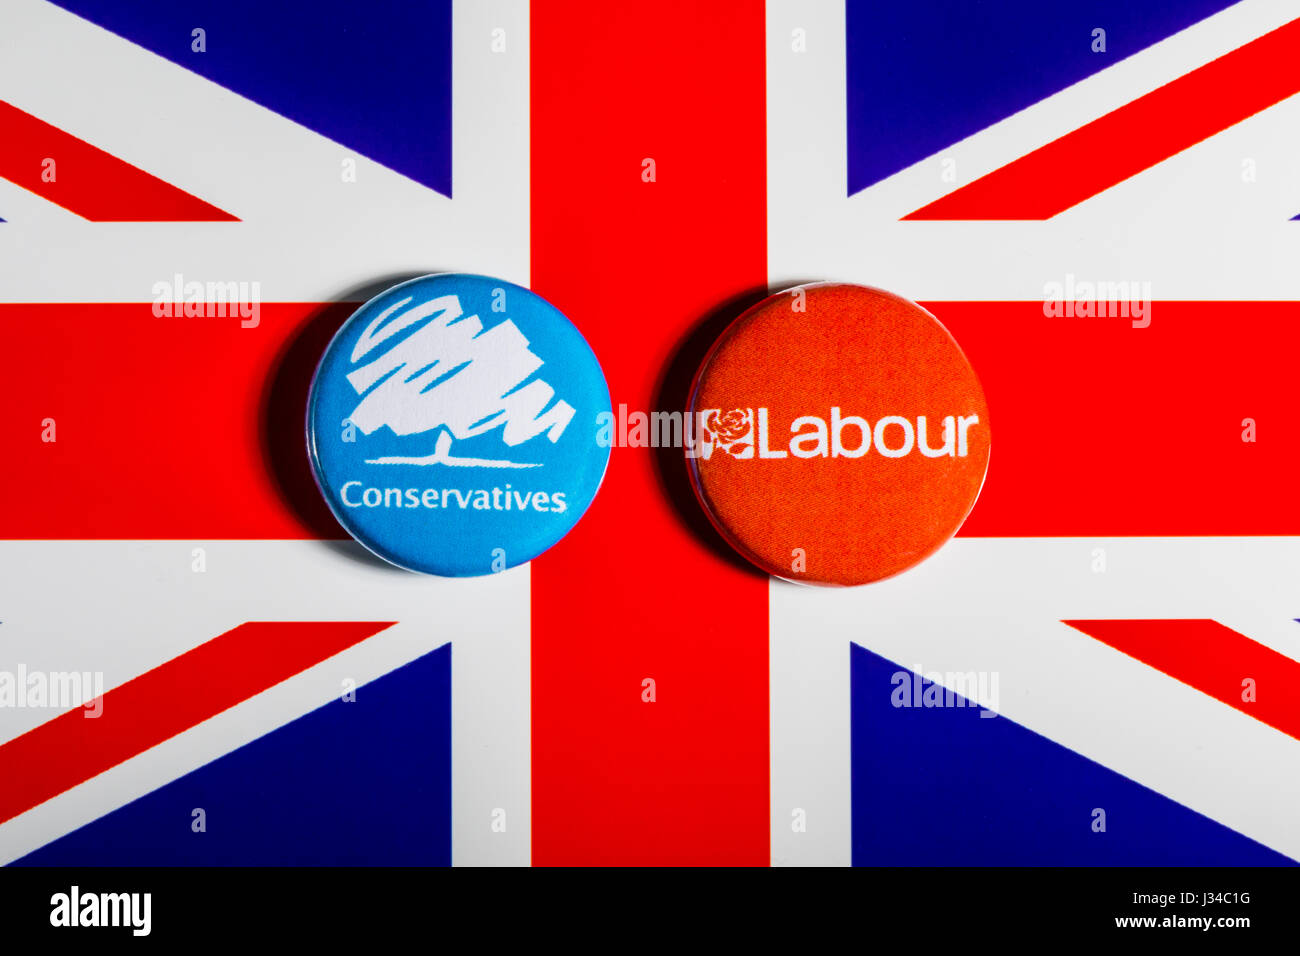 LONDON, UK - MAY 2ND 2017: Conservative and Labour Party pin badges over the UK flag, symbolizing the political - Stock Image